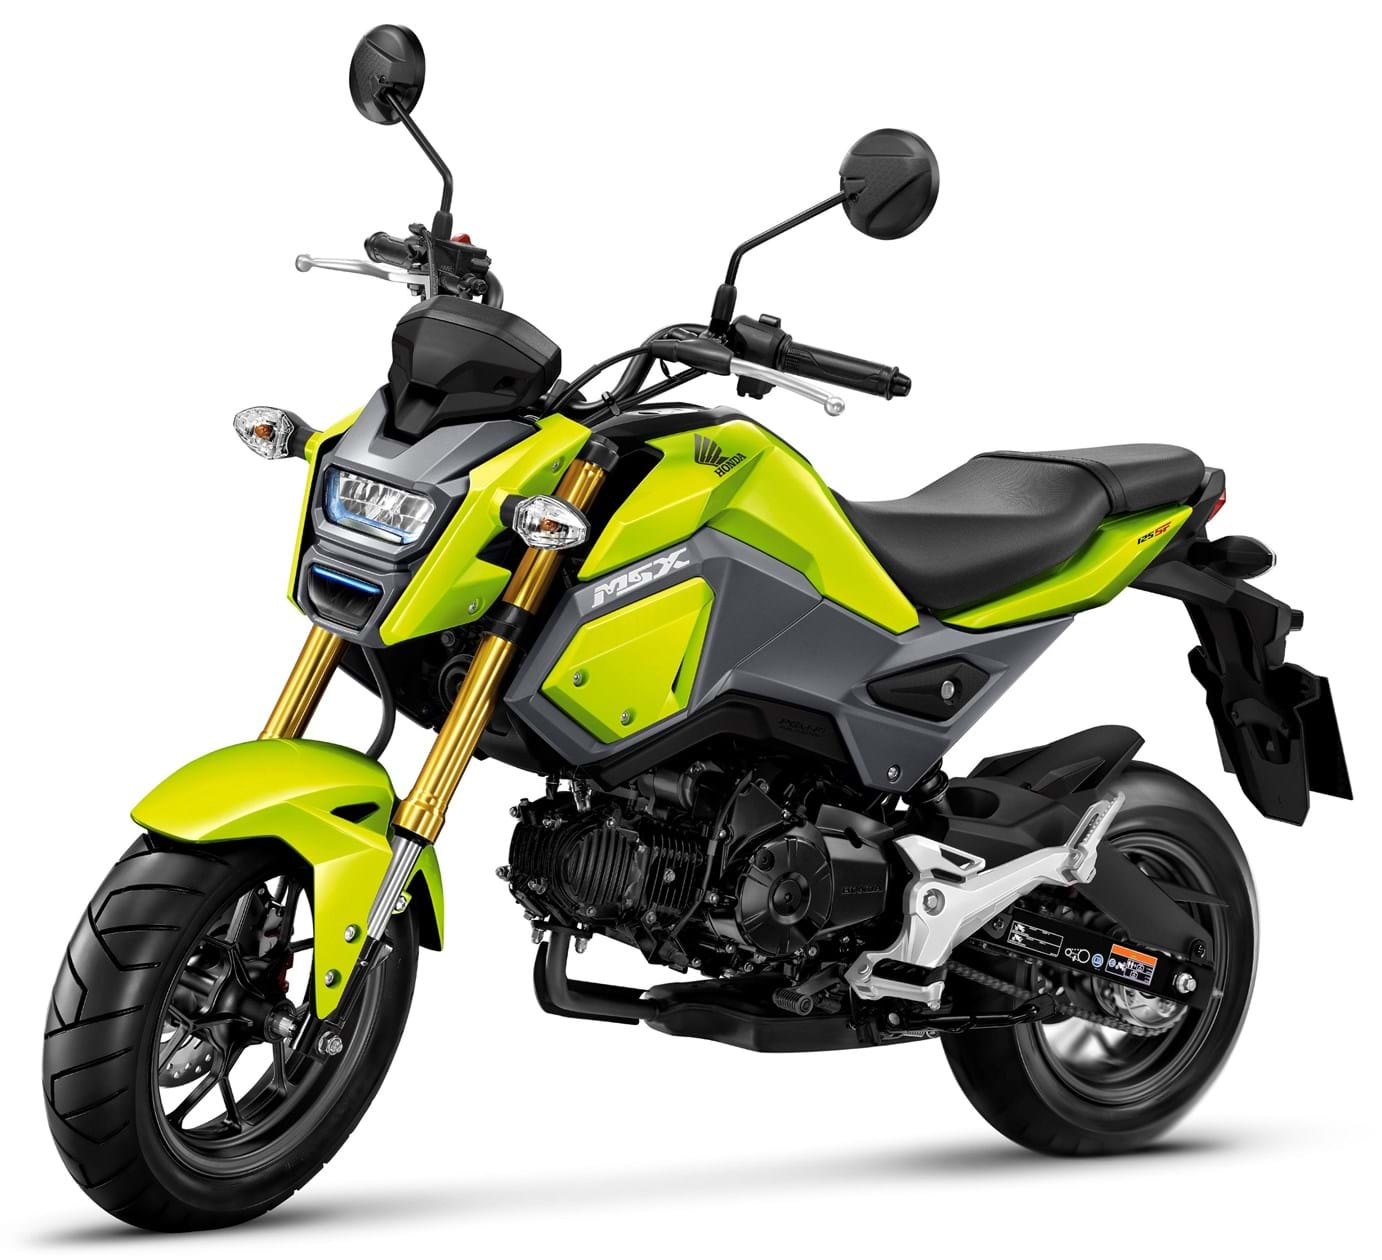 Honda Grom Price >> Honda Grom Review For Sale Price Guide The Bike Market